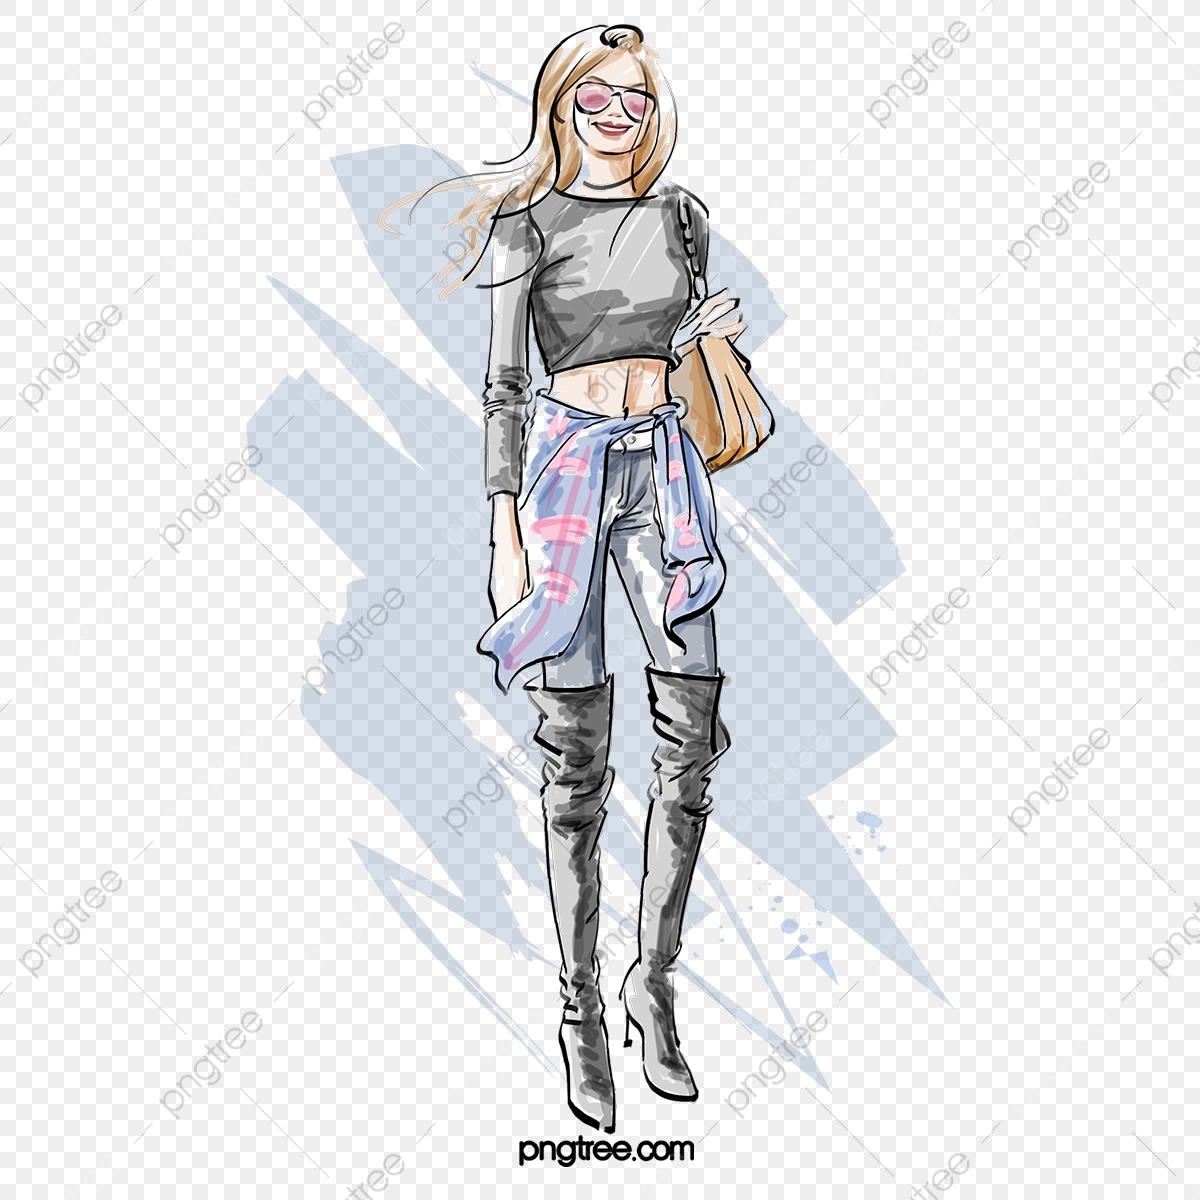 Gray Fashion Fashion Girl Hand Drawn Elements Fashion Latest Fashion Girl Png Transparent Clipart Image And Psd File For Free Download